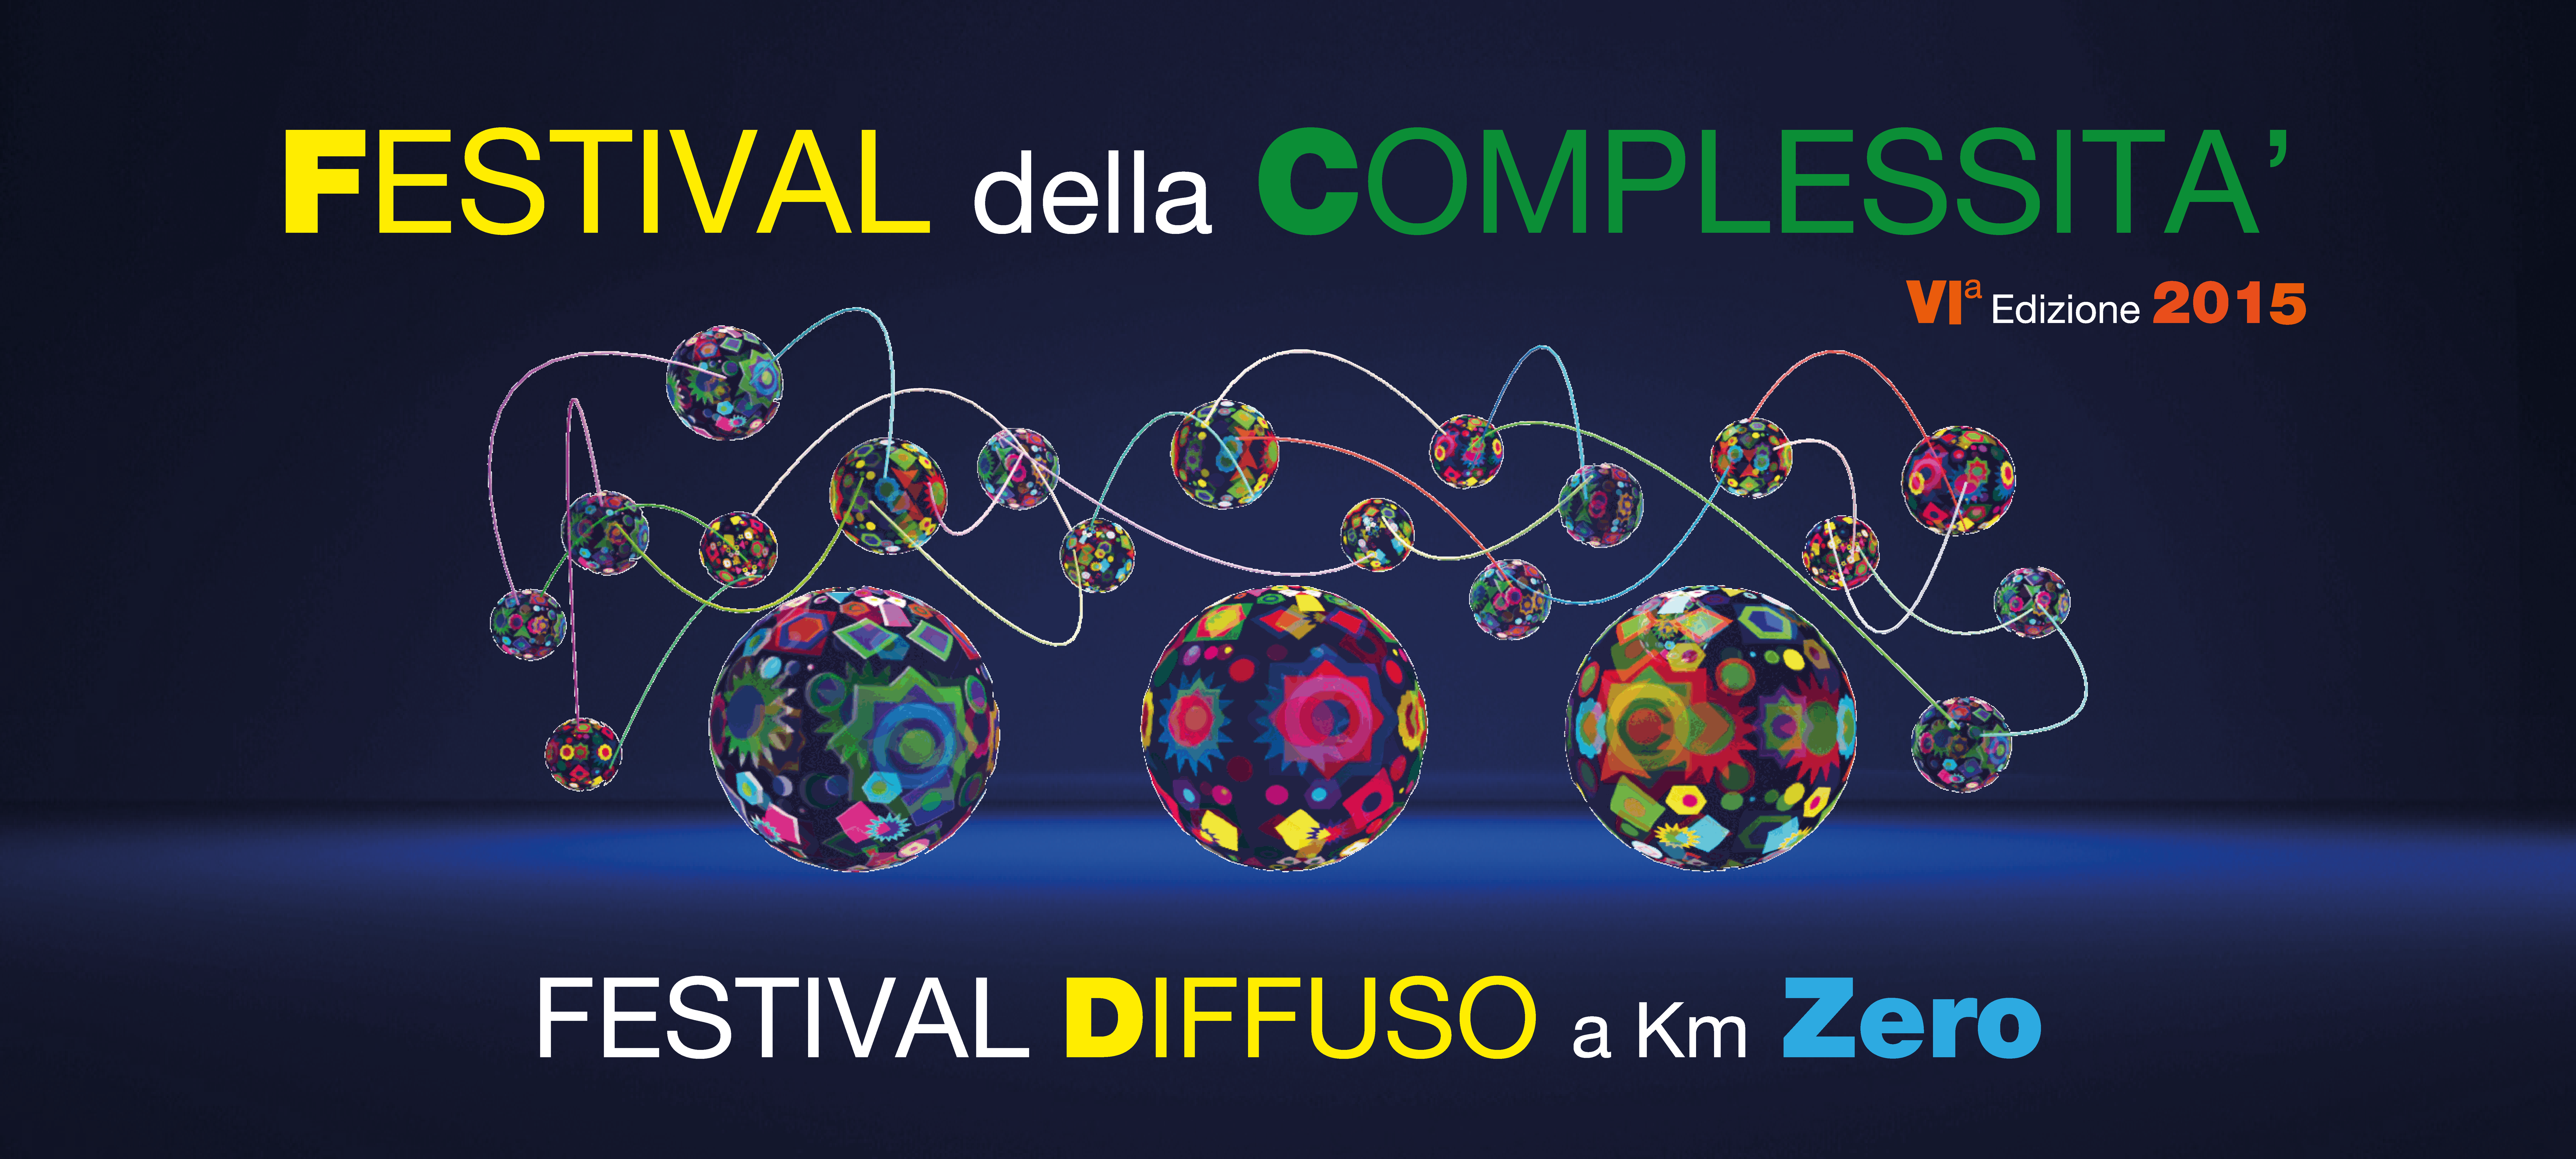 LogoFestival-official-2015